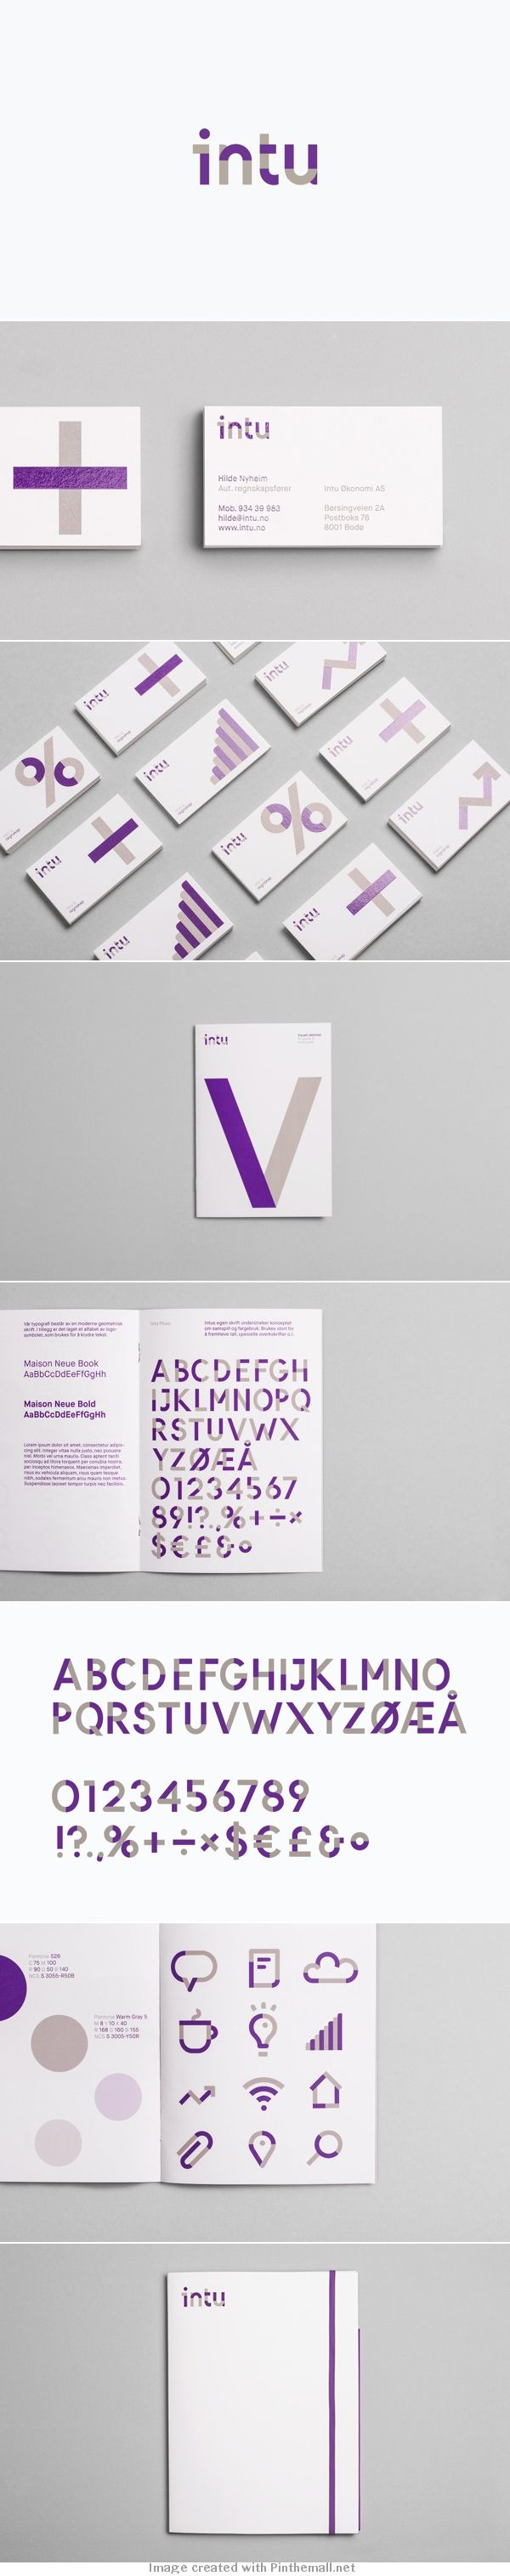 Identity for Intu, a norwegian accounting and consultant company, by Heydays…